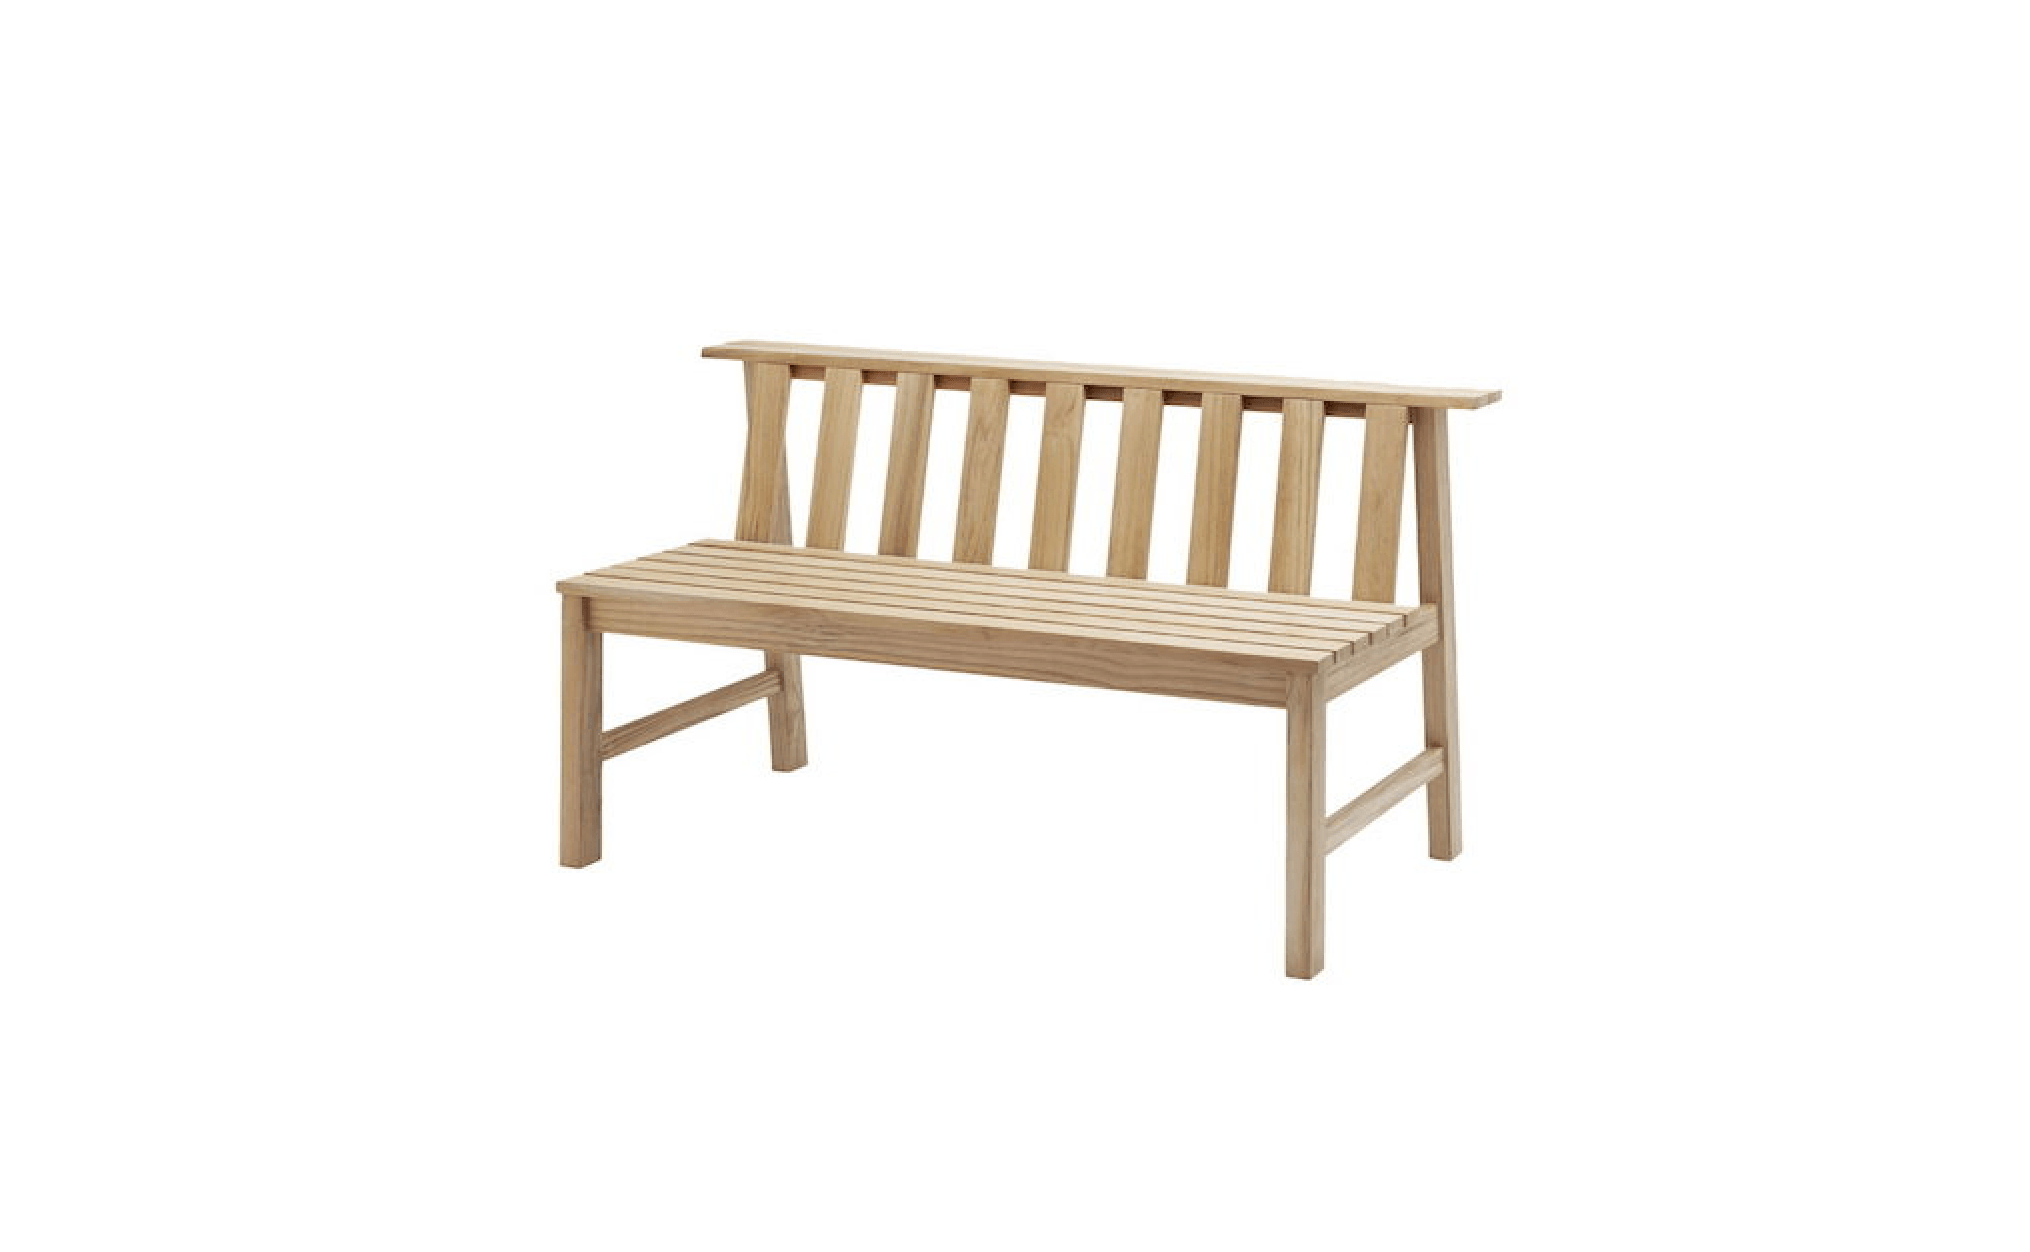 10 Easy Pieces Wooden Garden Benches Gardenista